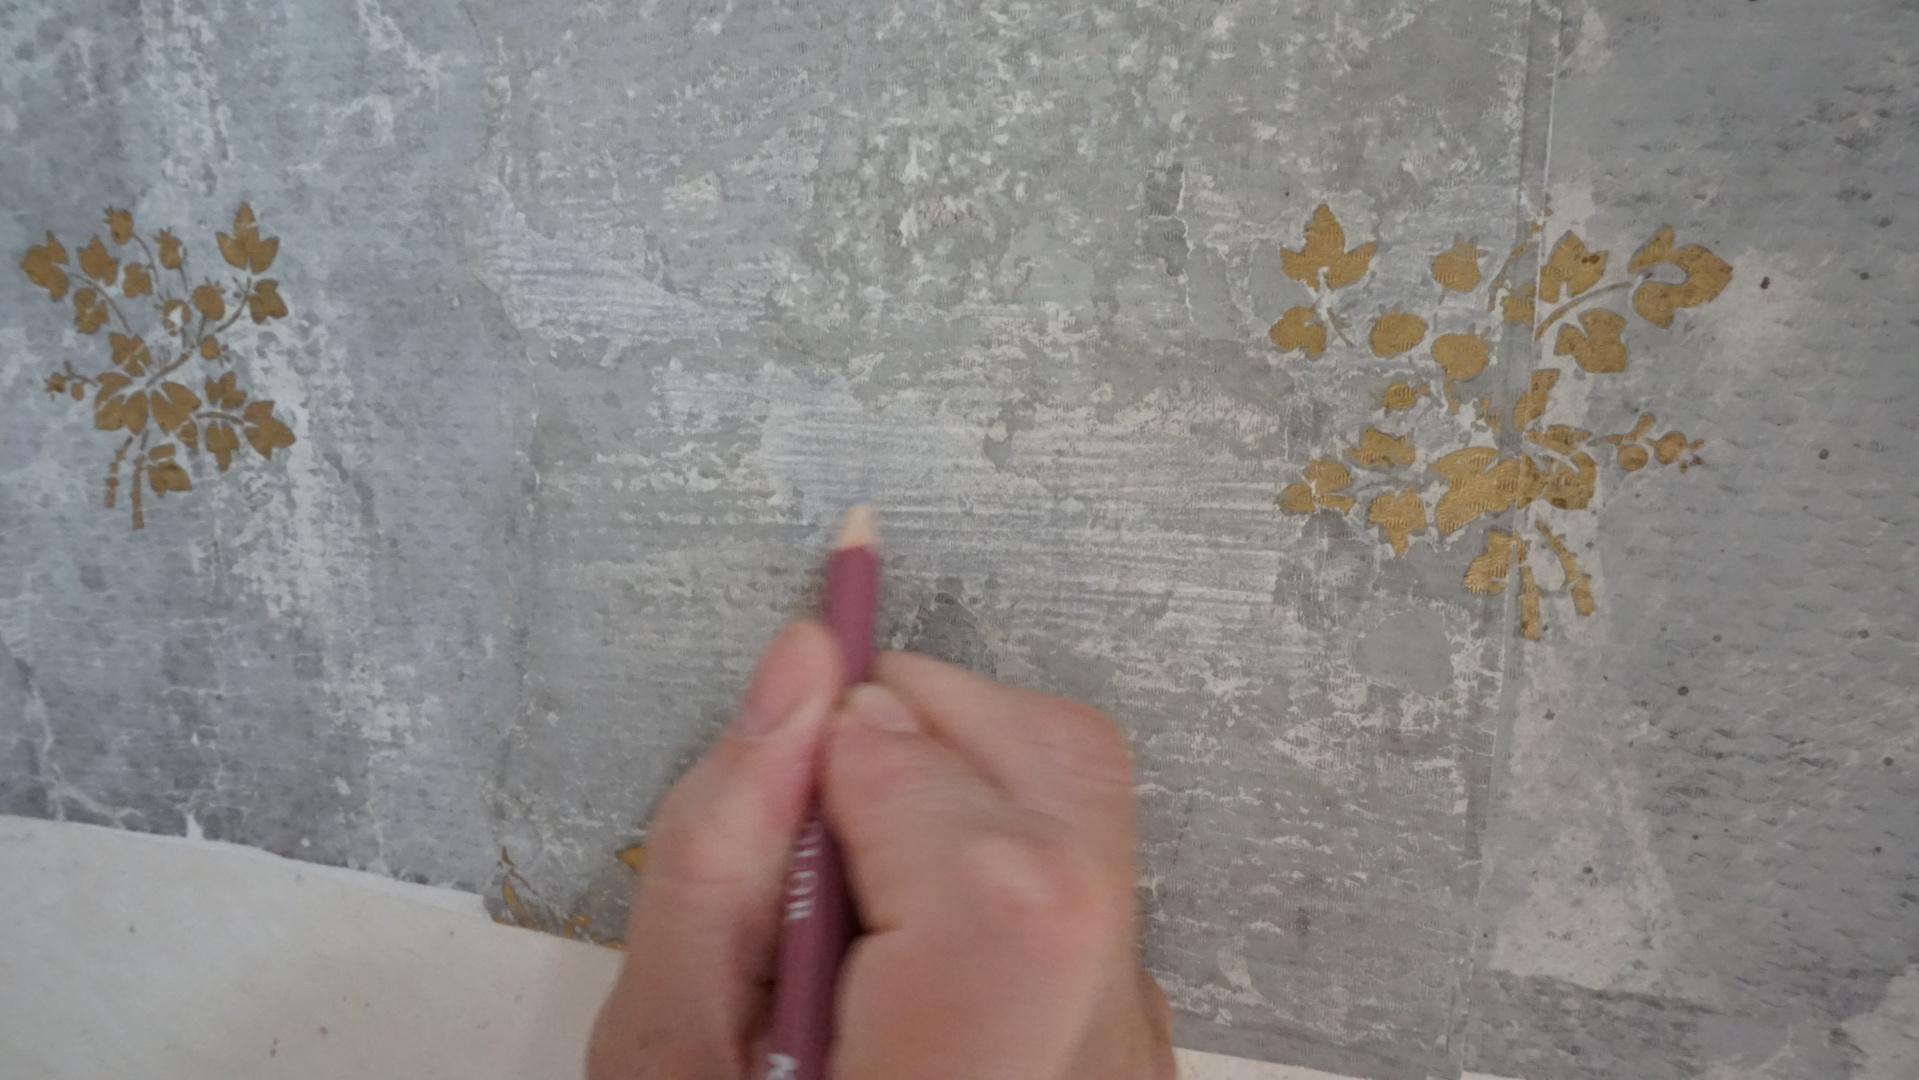 fig 36. Toning the grey wallpaper was done after it had been placed on the wall, so the local light conditions could be taken into account.